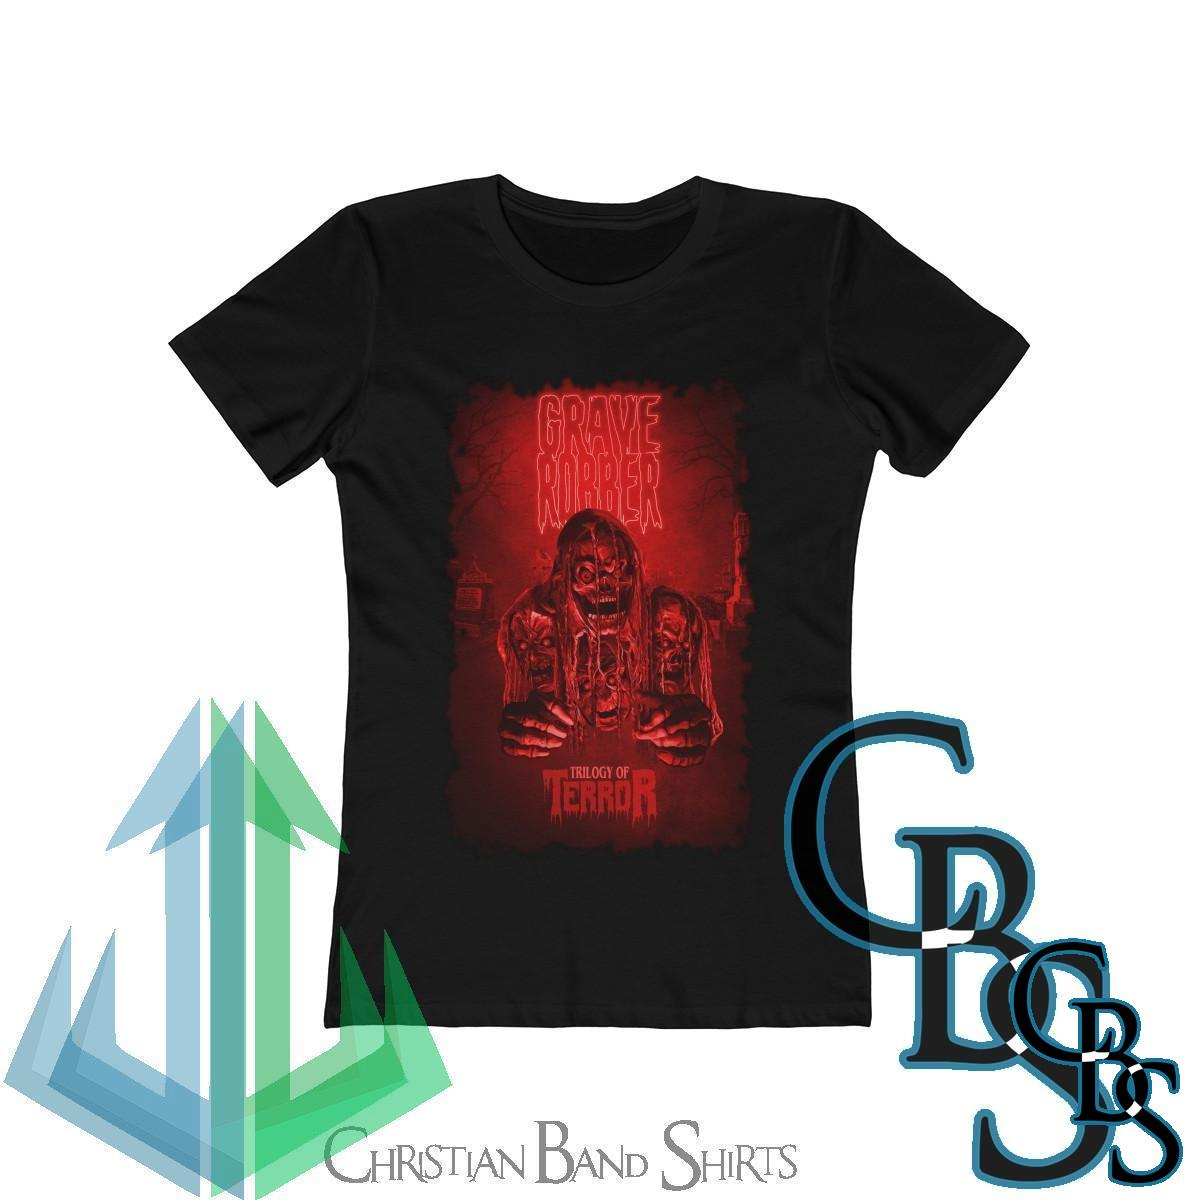 Grave Robber Trilogy of Terror (Limited Edition Red) Women's Short Sleeve Tshirt